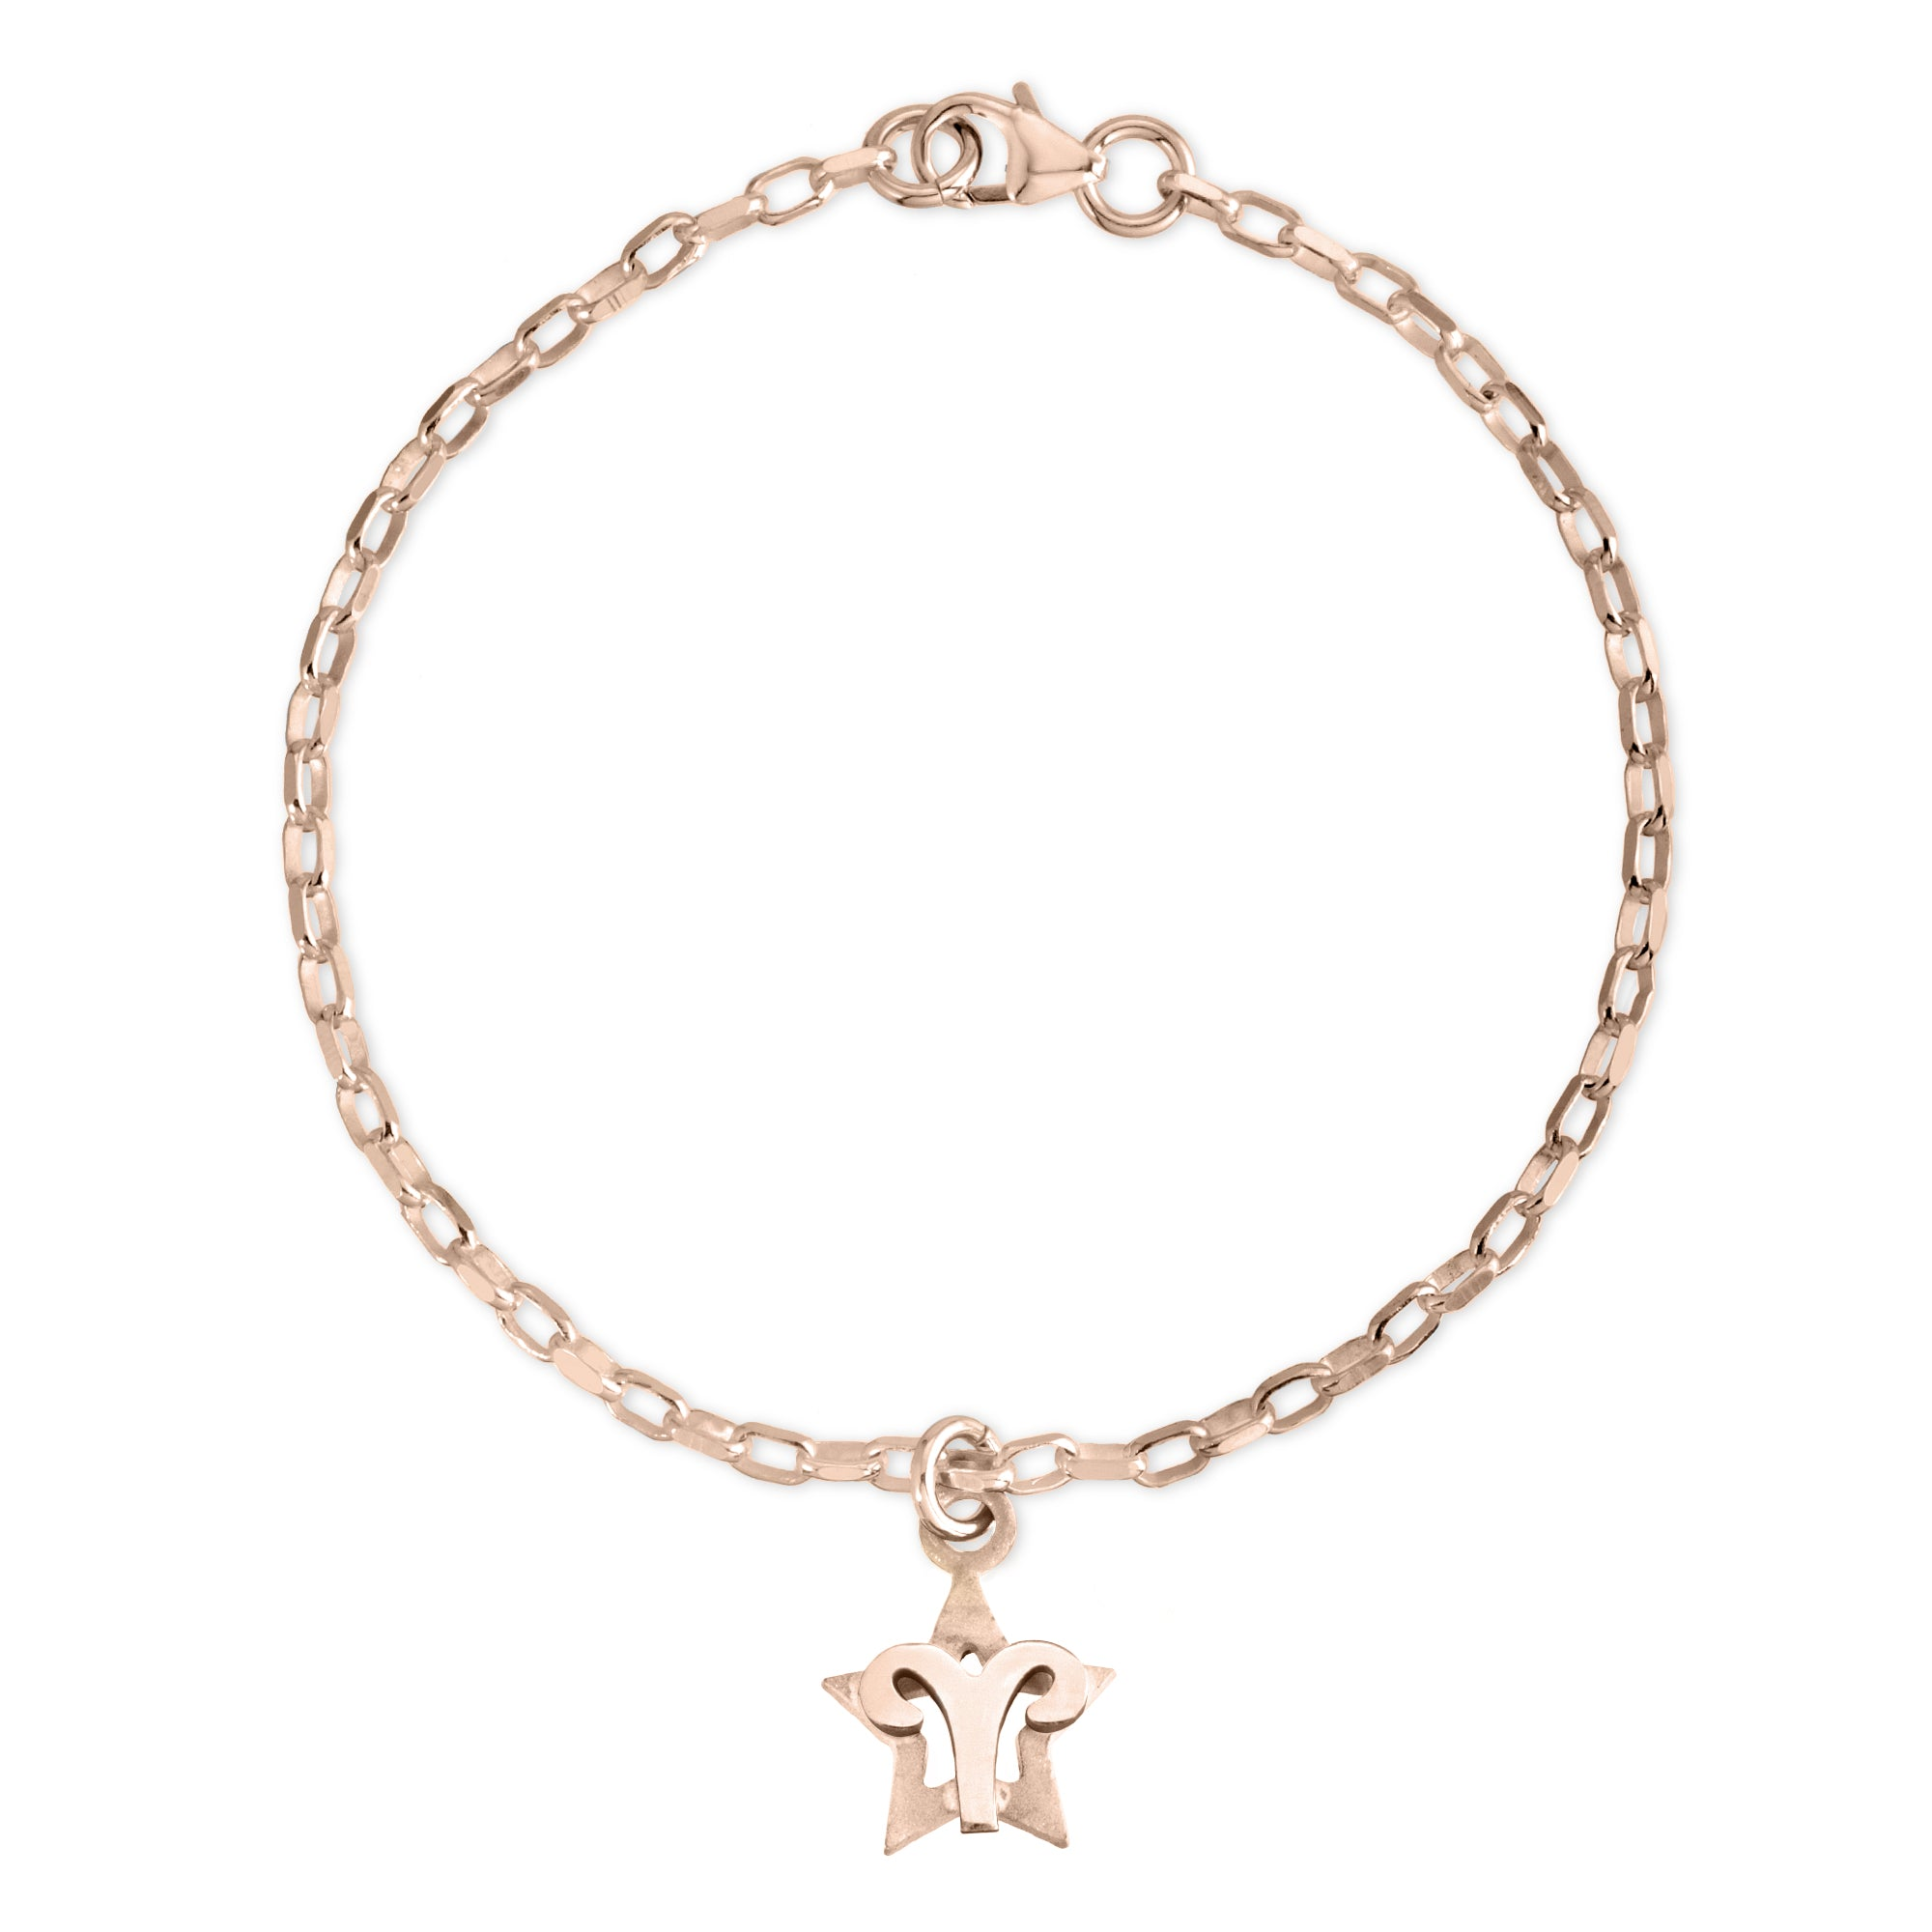 The W Brothers Sterling silver zodiac horoscope aries charm bracelet crafted to perfection in premium 925 Sterling silver, available in silver, real 18k gold or rose gold layering. Shop your star-signs at thewbros.com